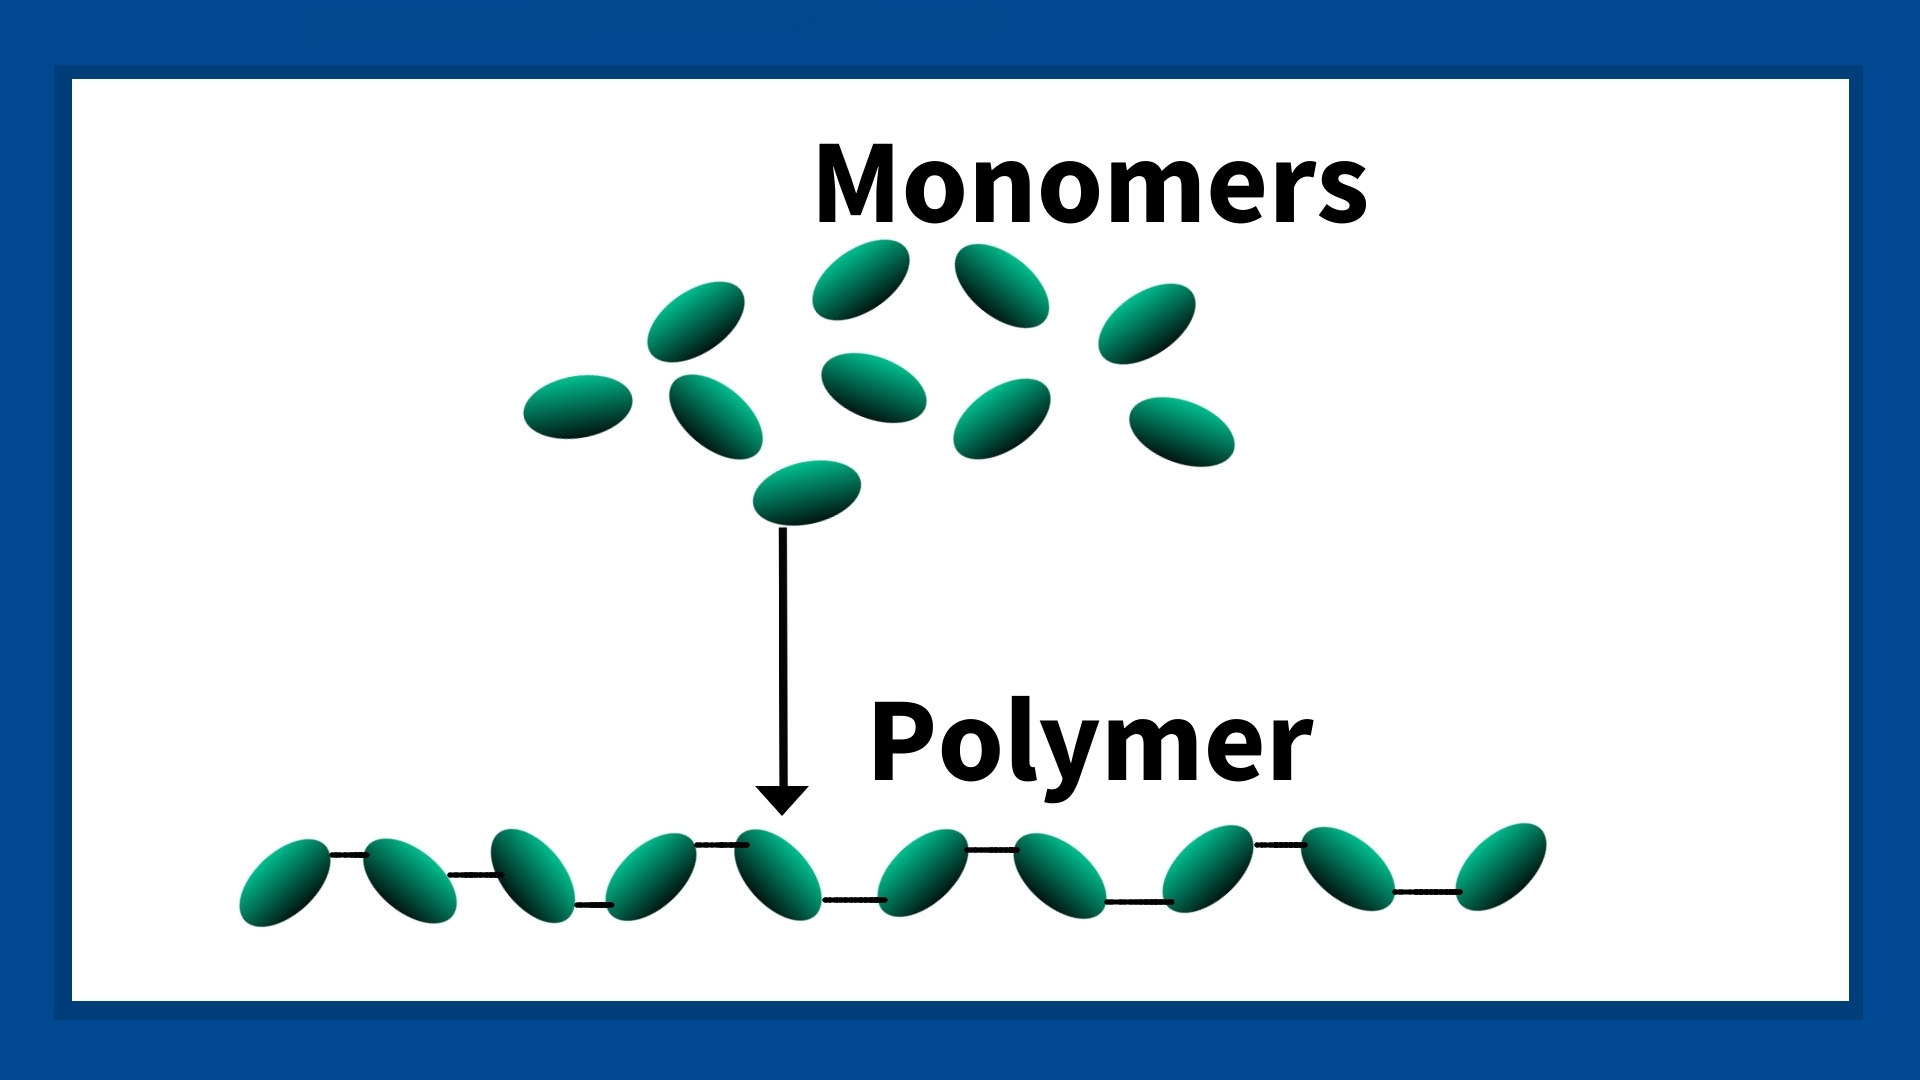 This image shows how many monomer molecules will come together to create a polymer chain.